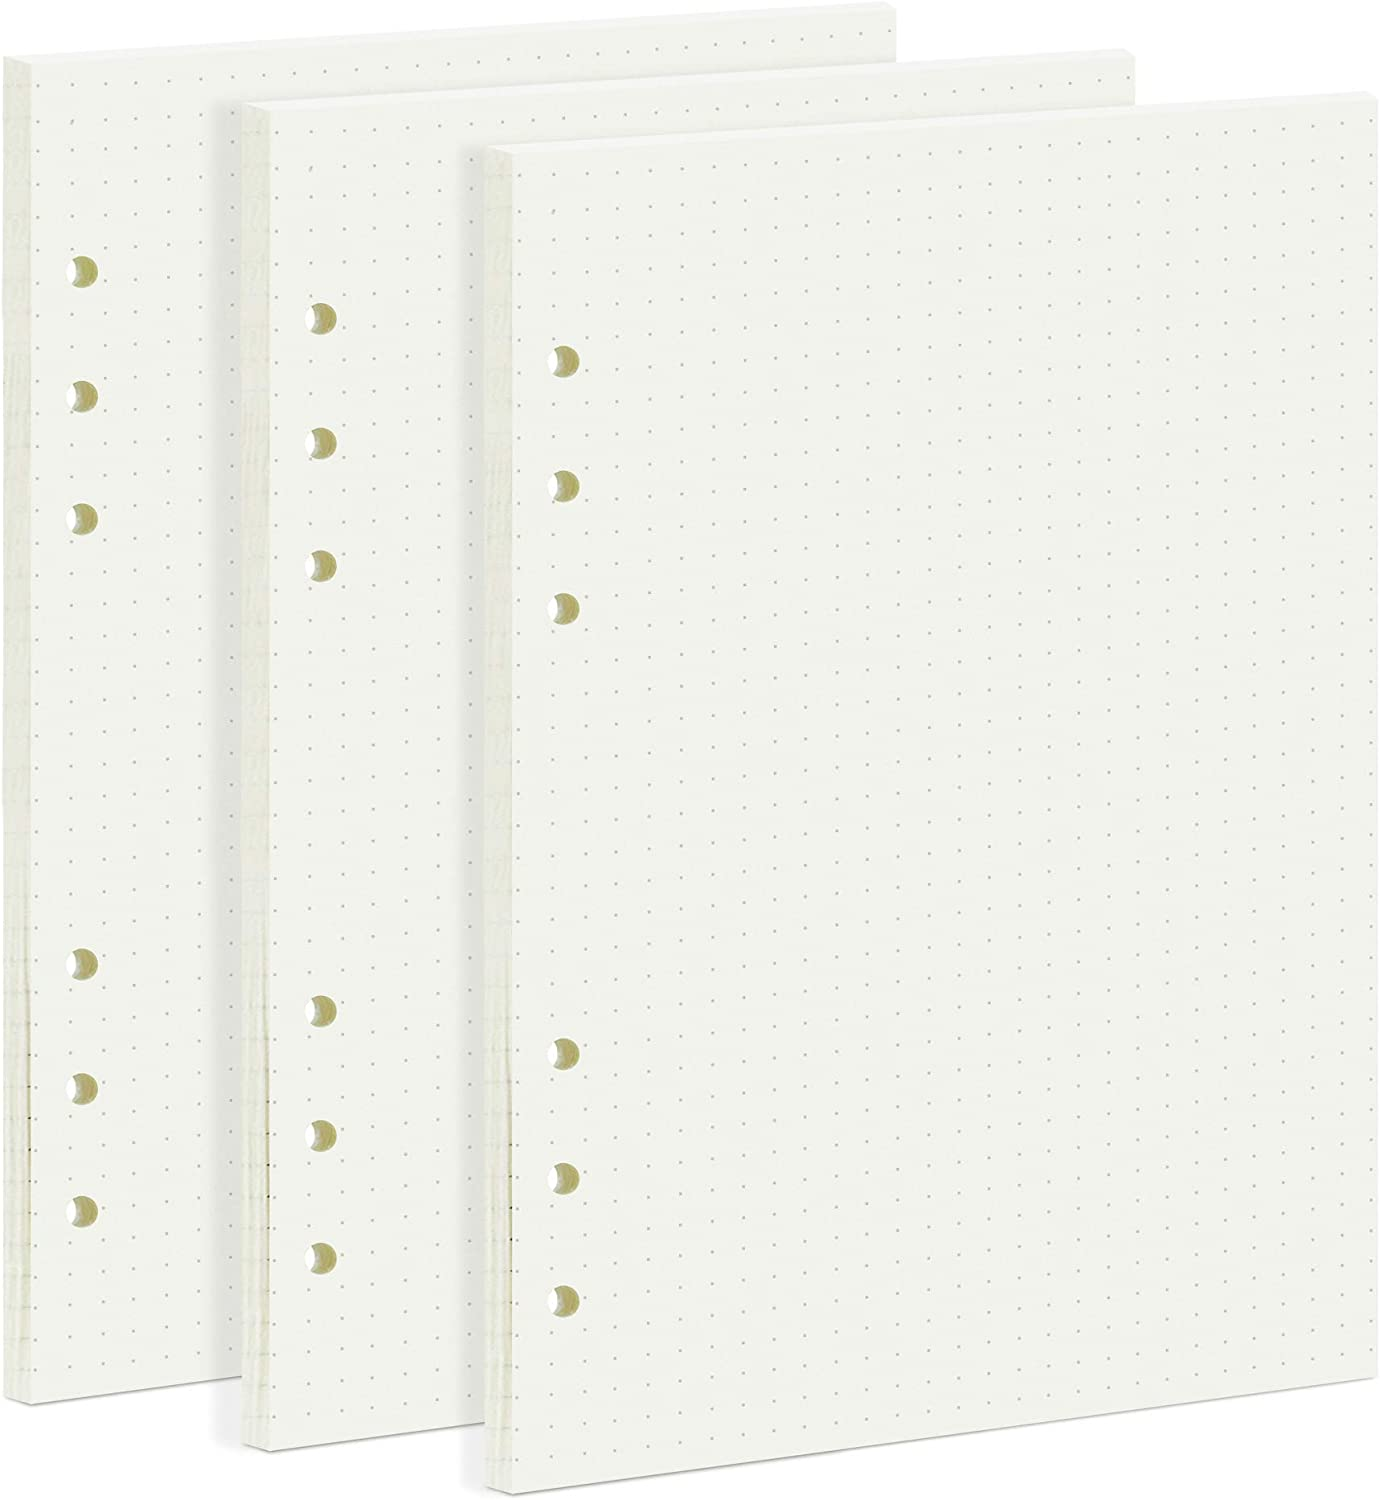 135 Max 65% OFF Sheets Planner Refill Paper A5 Inserts List price Holes 6 Dotted